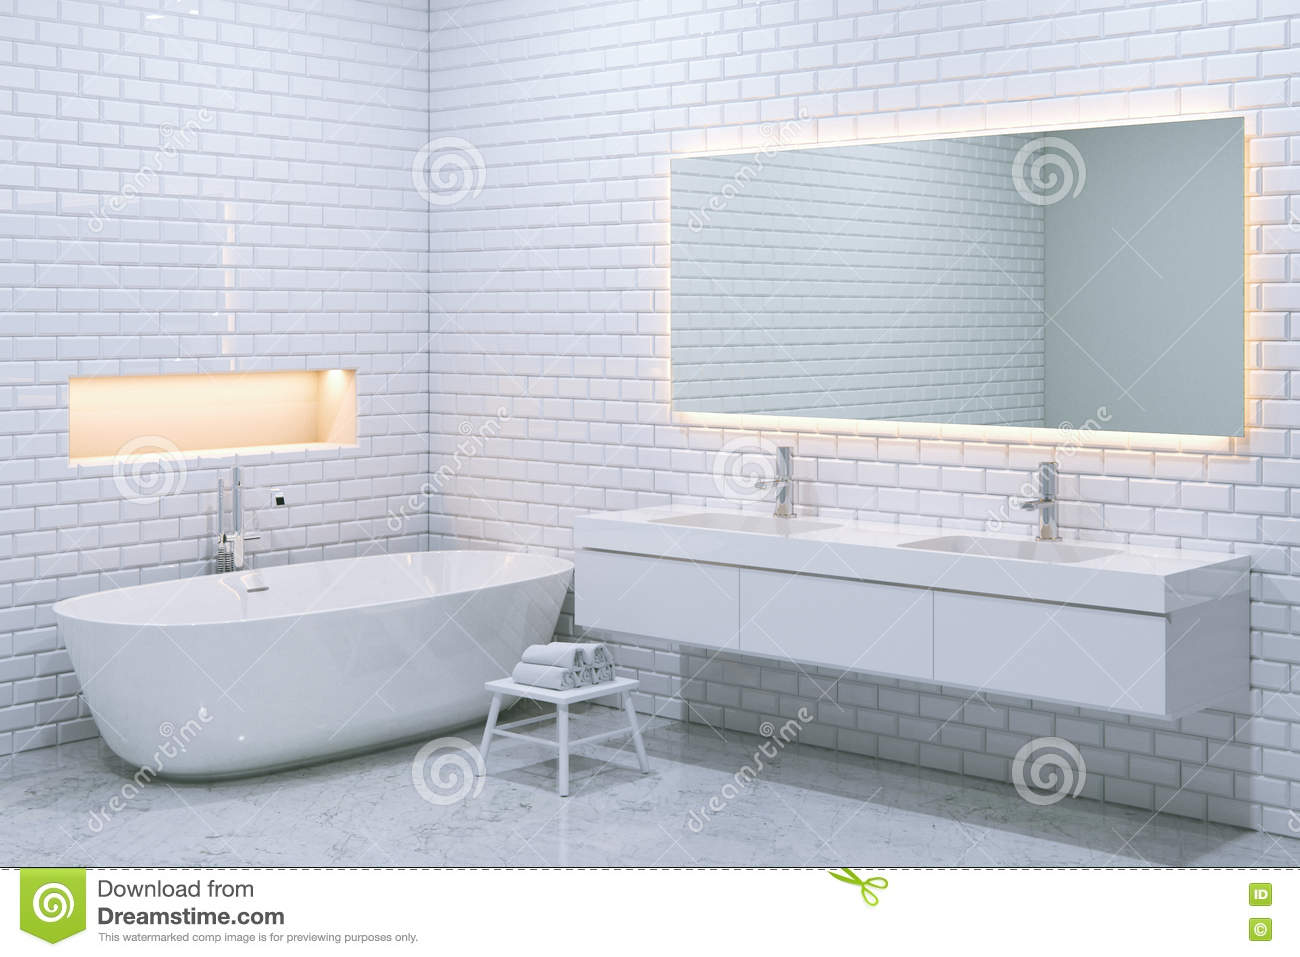 white luxury bathroom interior with brick walls. 3d render. stock